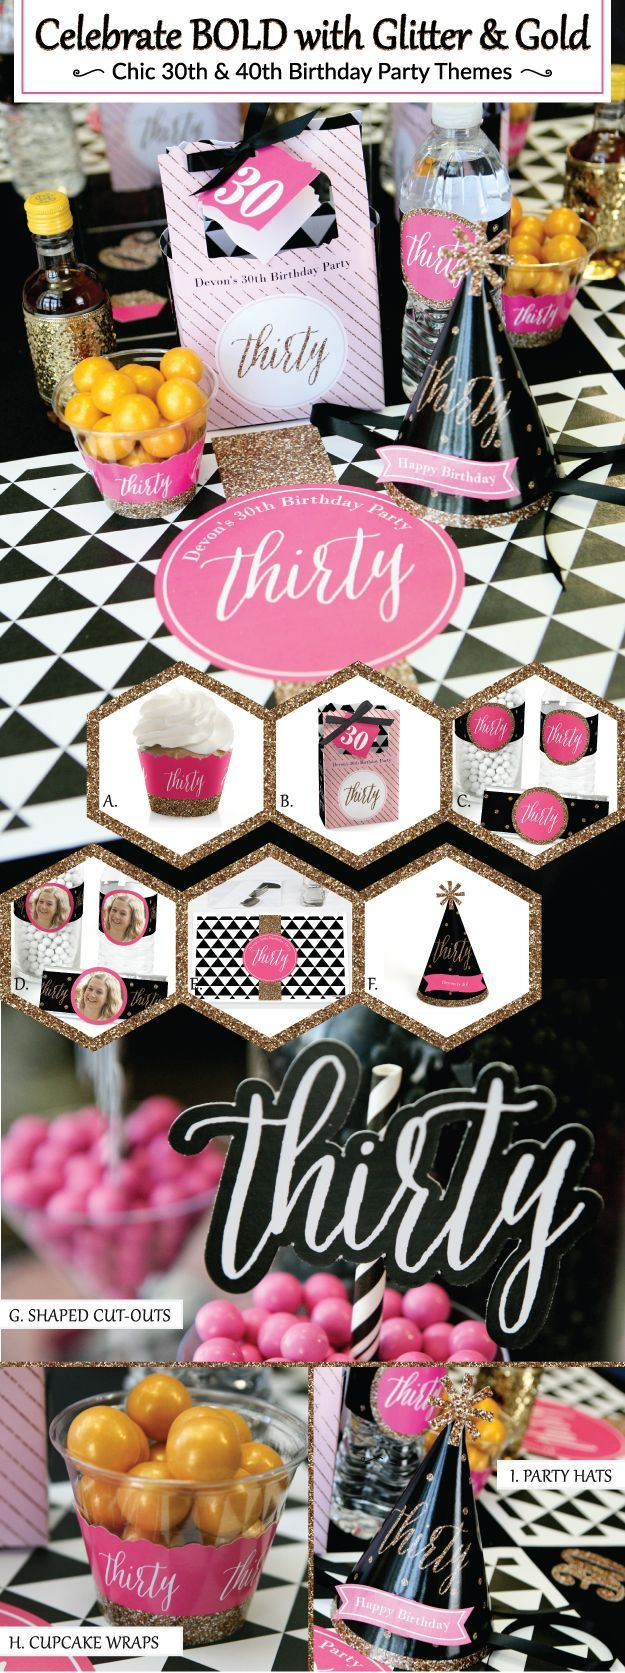 Chic 30th Birthday Party Decorations Black Pink theme from